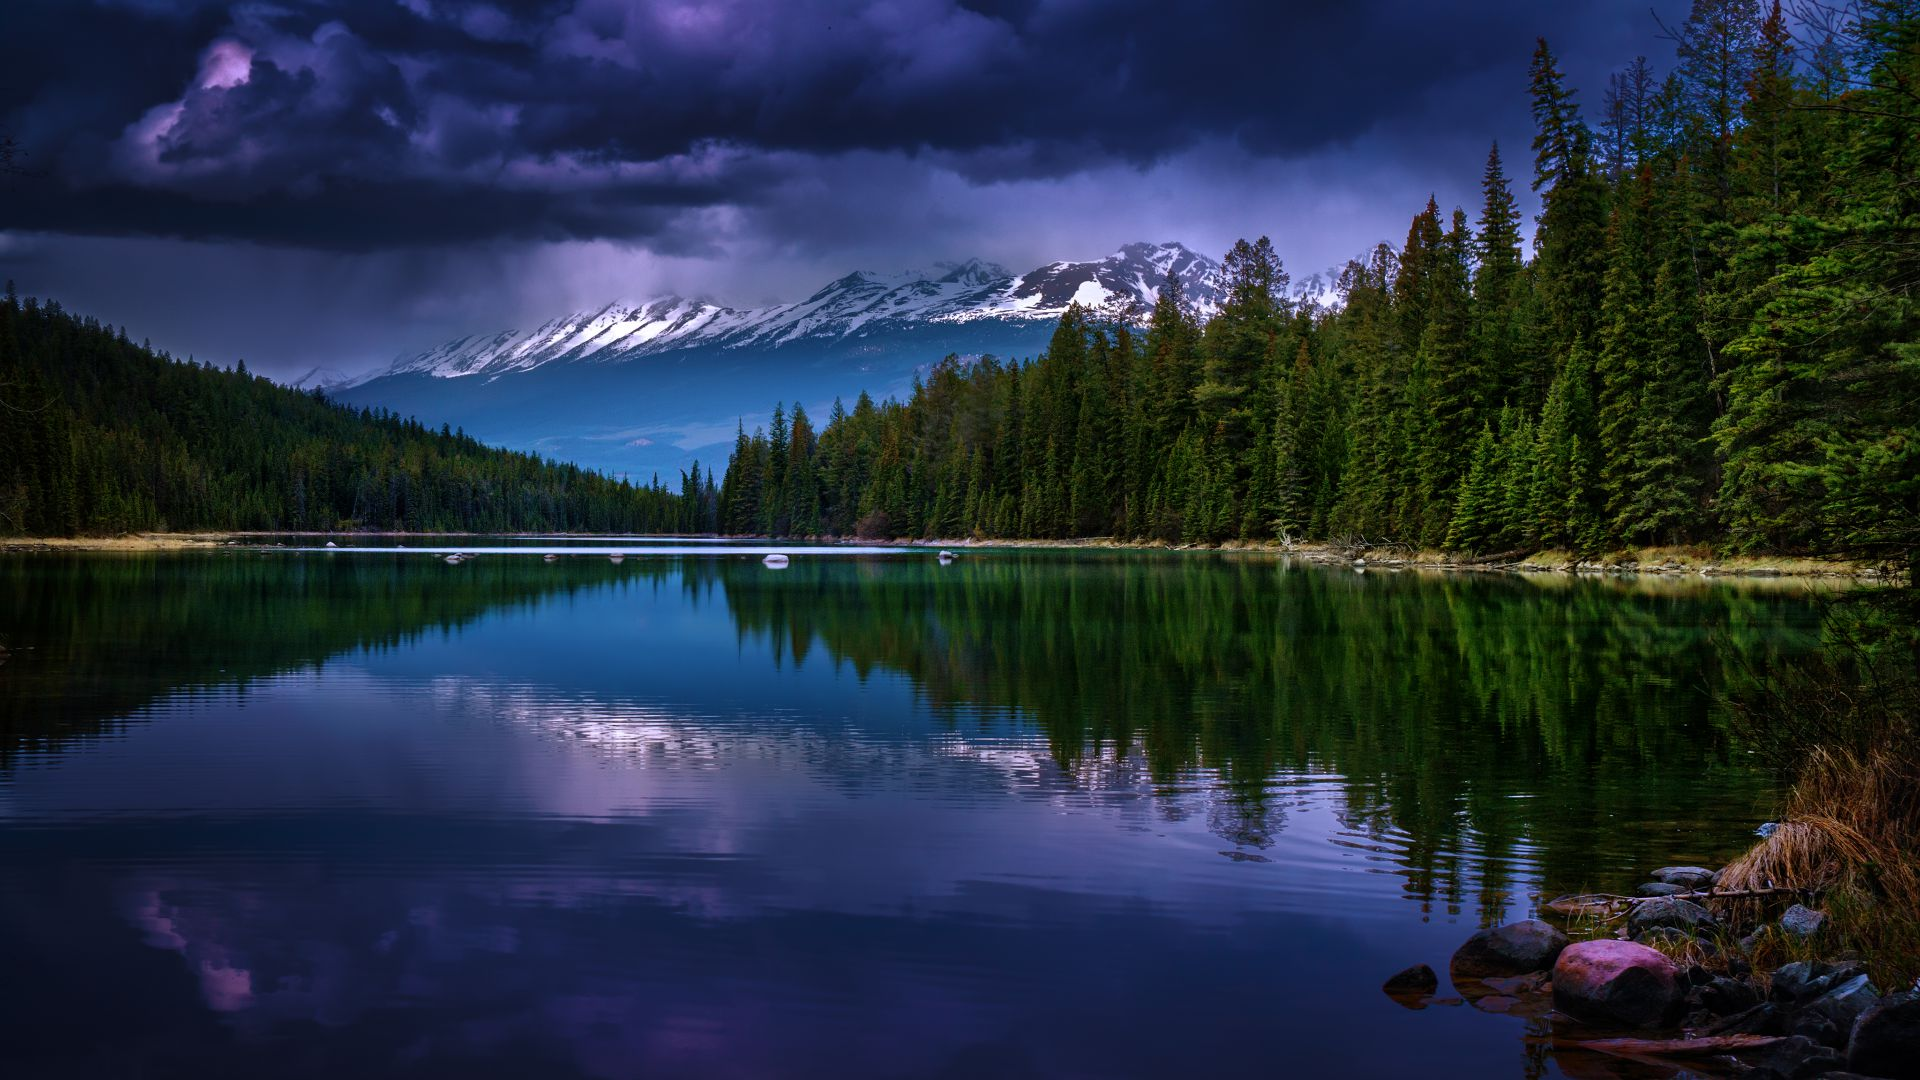 Mountains, river, pines, trees, clouds